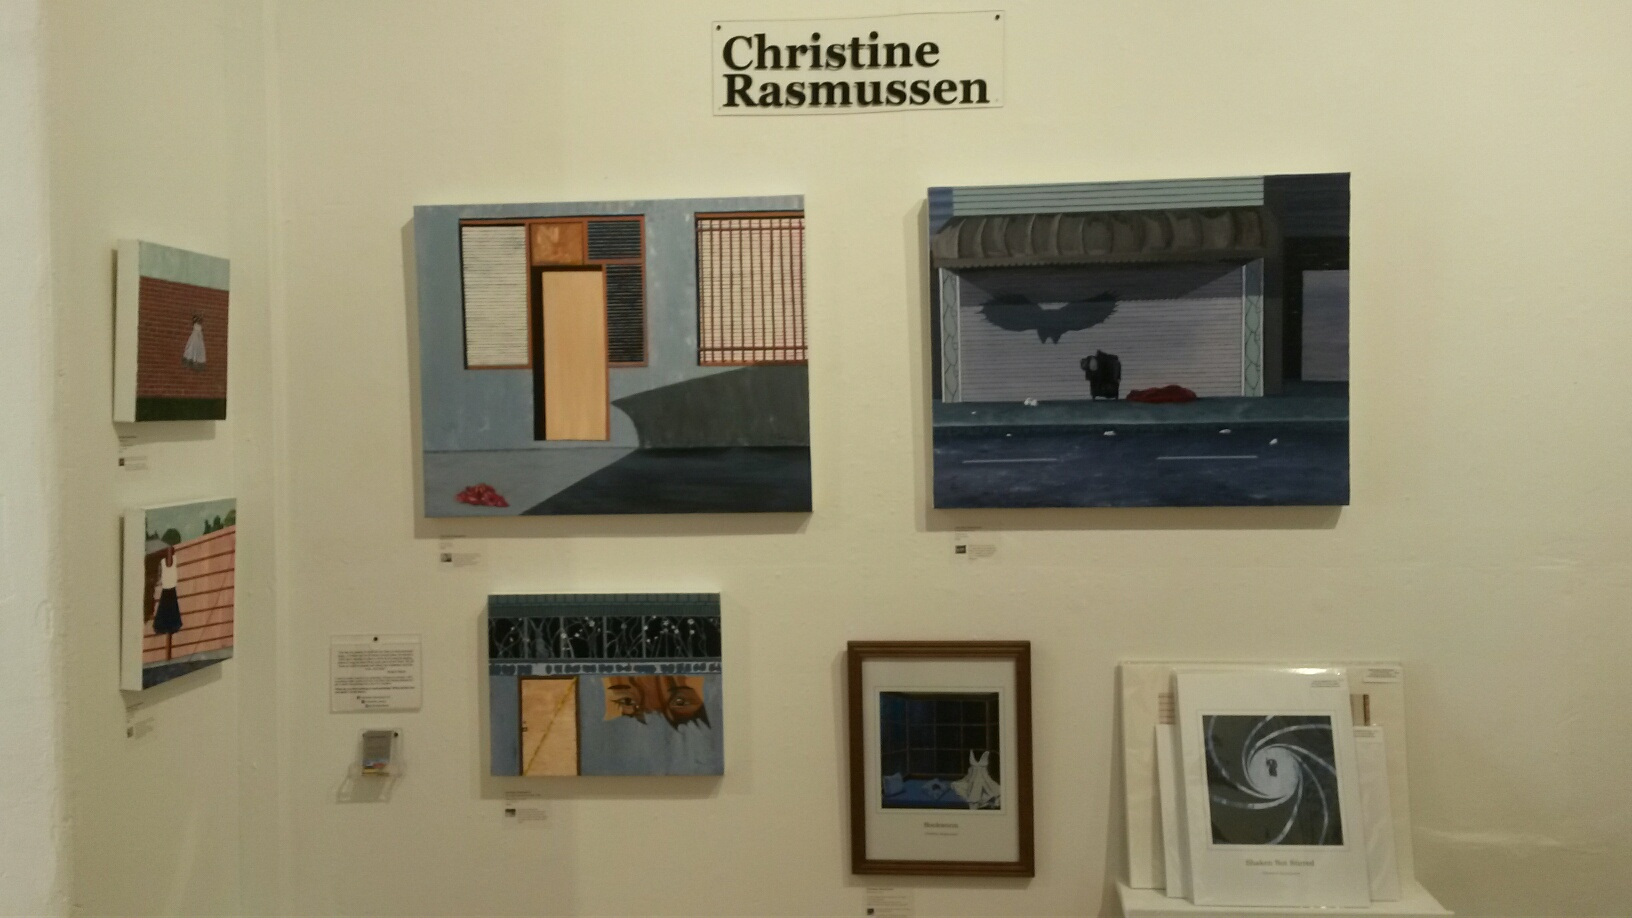 My display at City Art Gallery this month - trust me, it looks better in real life. Don't believe me? Come see for yourself!